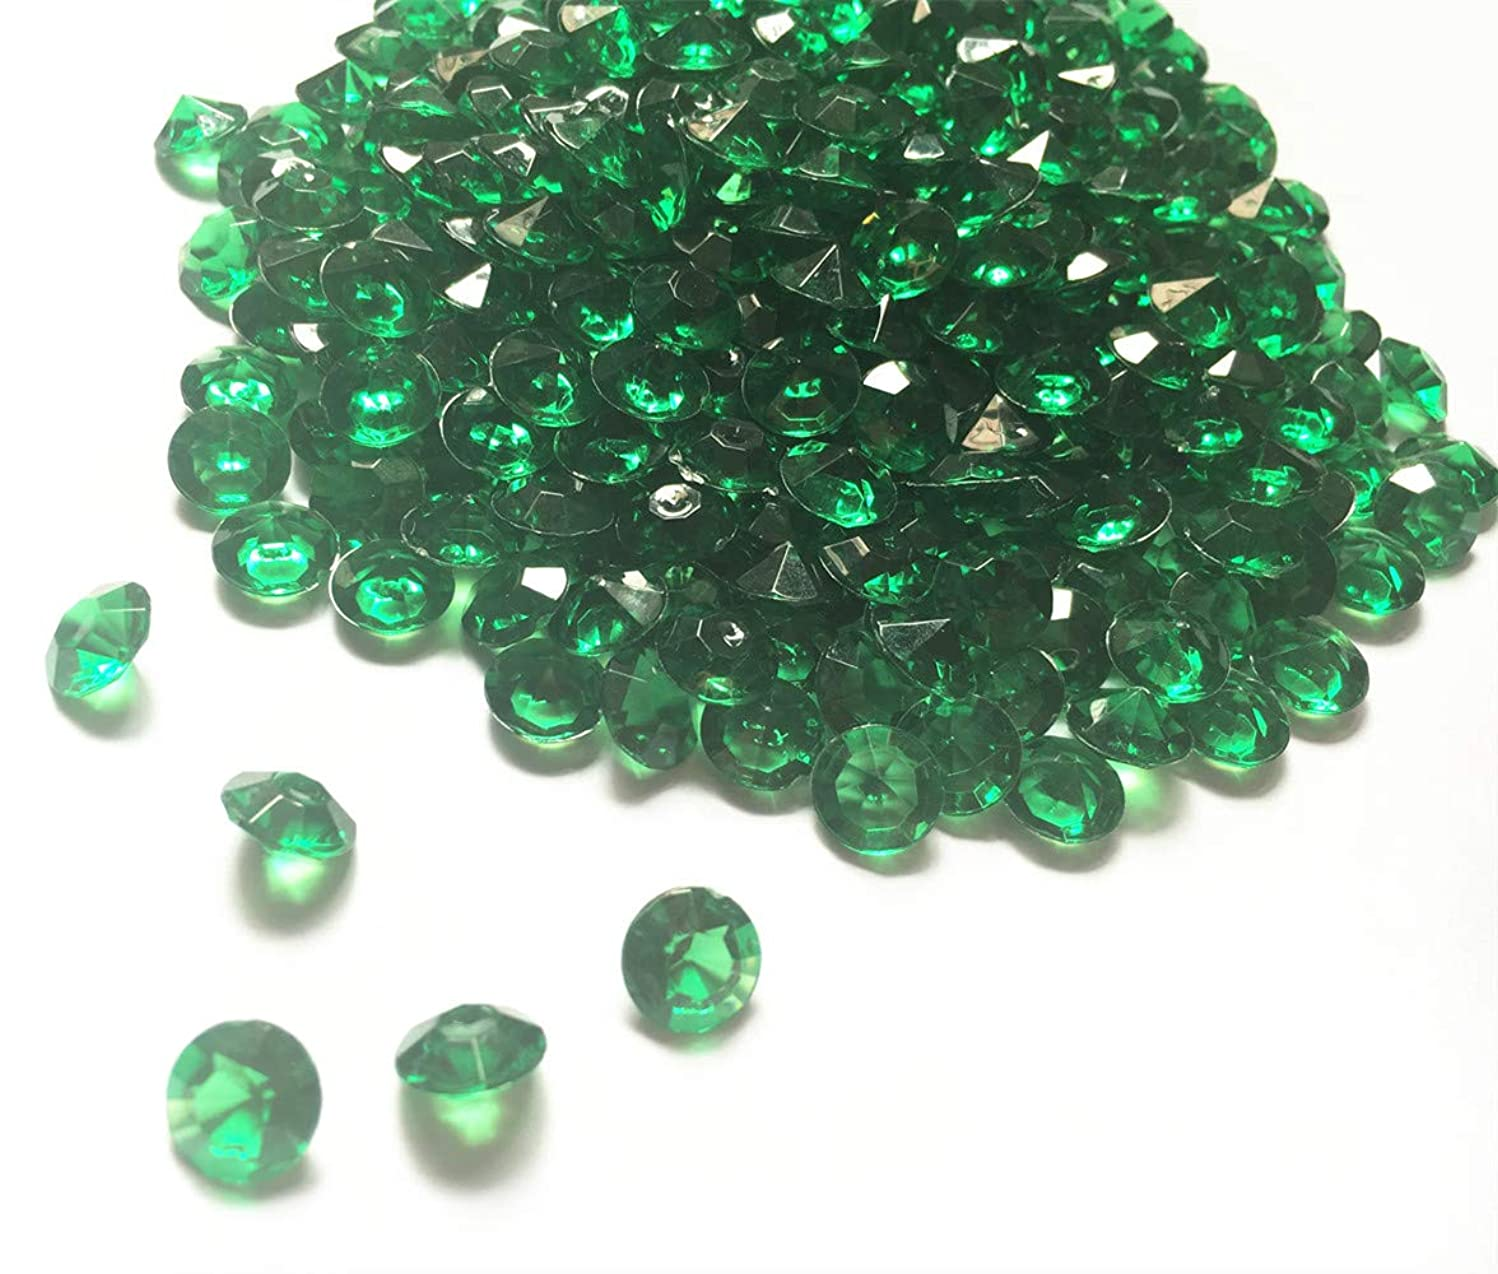 Briliant Shop 10mm Acrylic Color Faux Round Diamond Crystals Treasure Gems for Table Scatters, Vase Fillers, Event, Wedding, Arts & Crafts (1000 pcs) (Emerald Green)